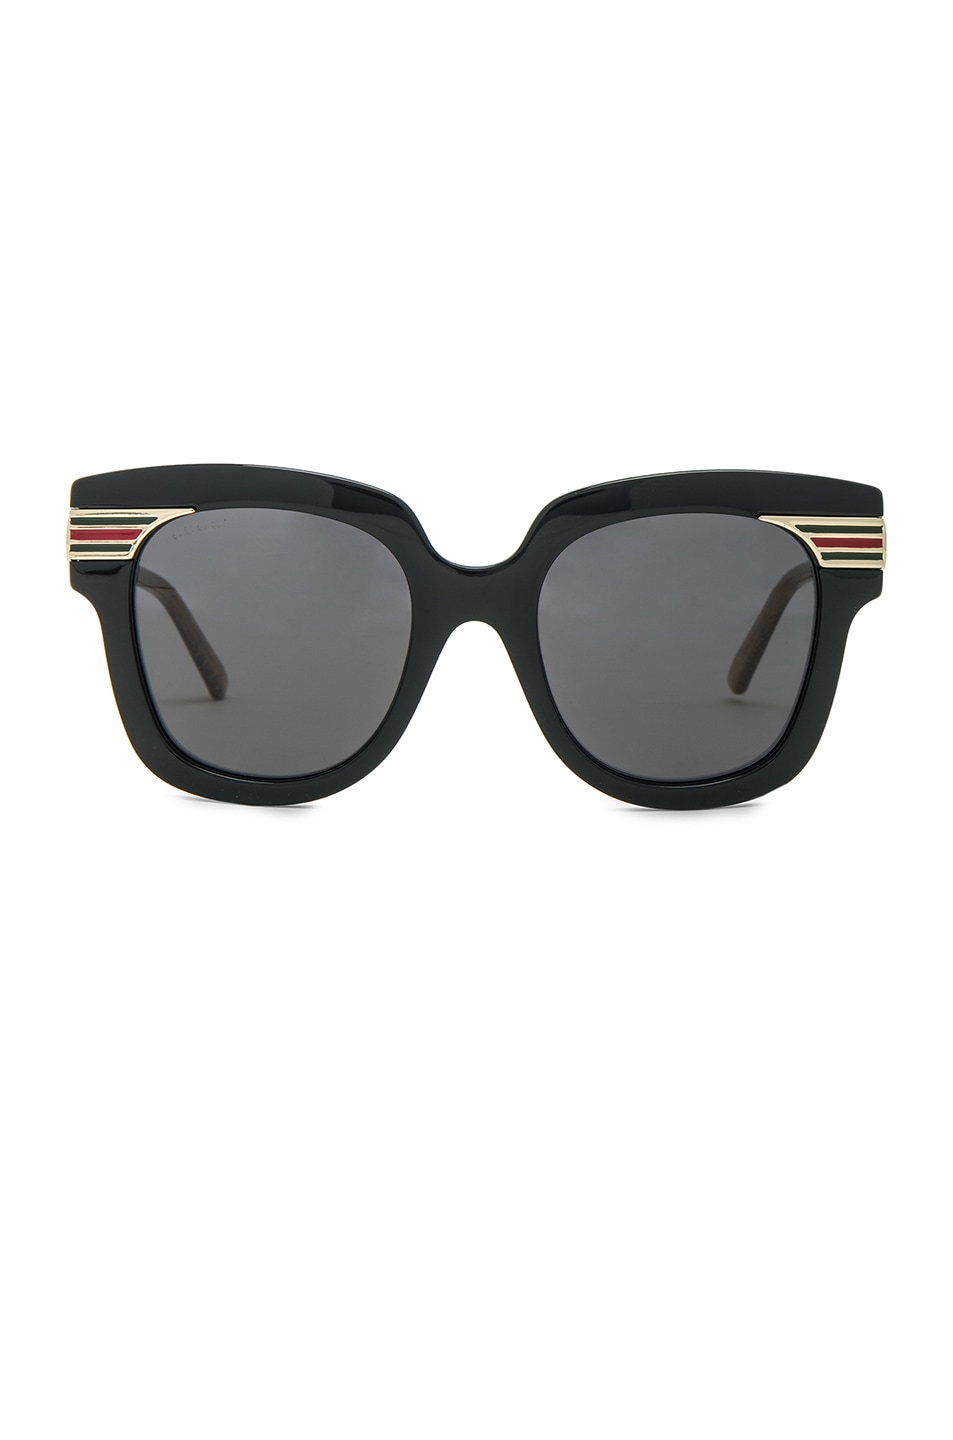 d4a6ba25a79 Image 1 of Gucci Vintage Web Sunglasses in Gold